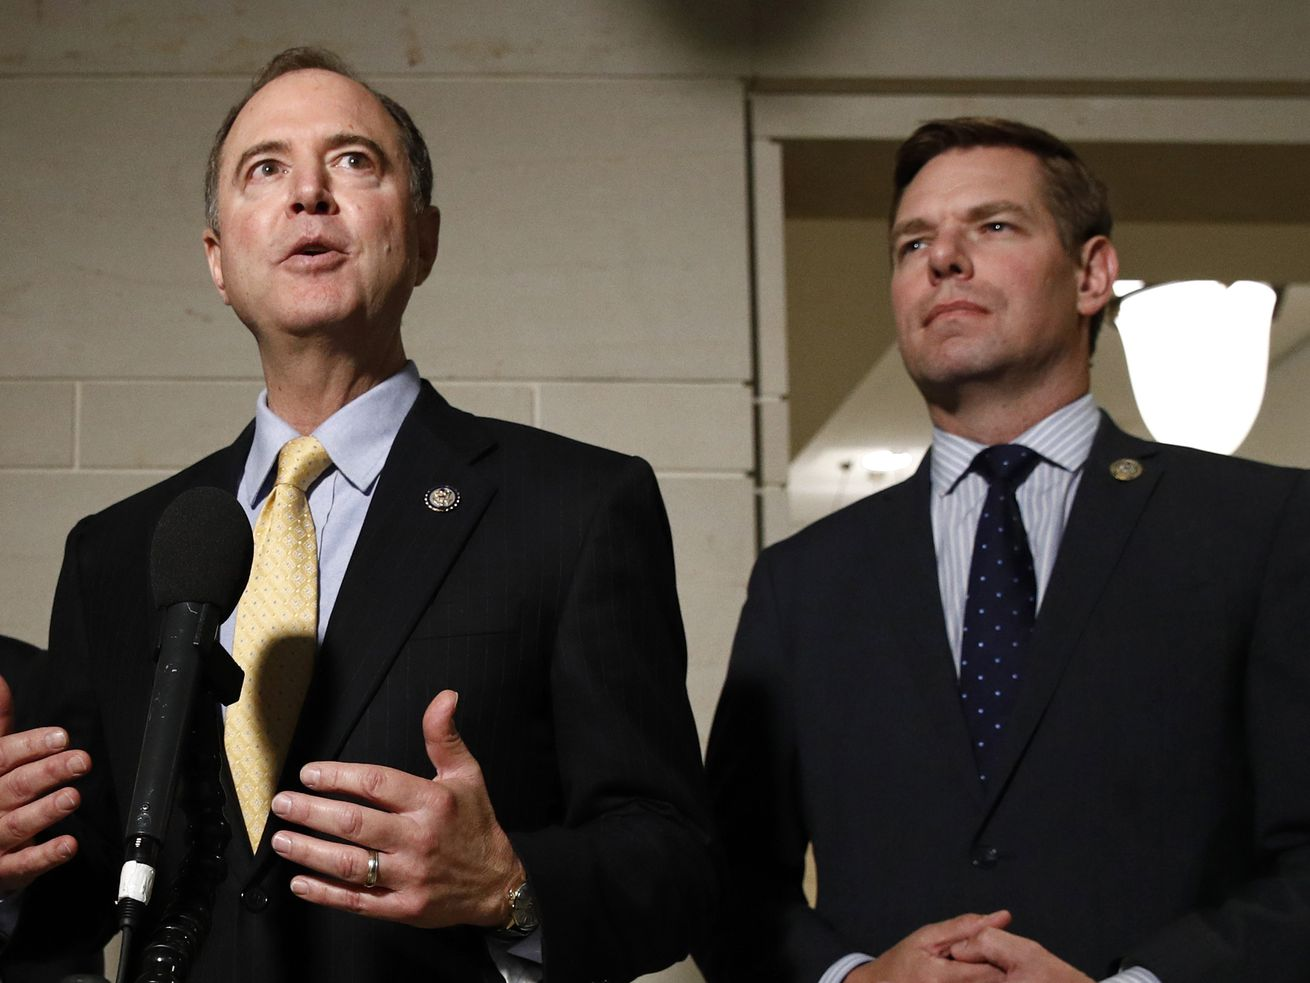 In this May 28, 2019 file photo, Rep. Adam Schiff, D-Calif., left, and Rep. Eric Swalwell, D-Calif., speak with members of the media on Capitol Hill in Washington.